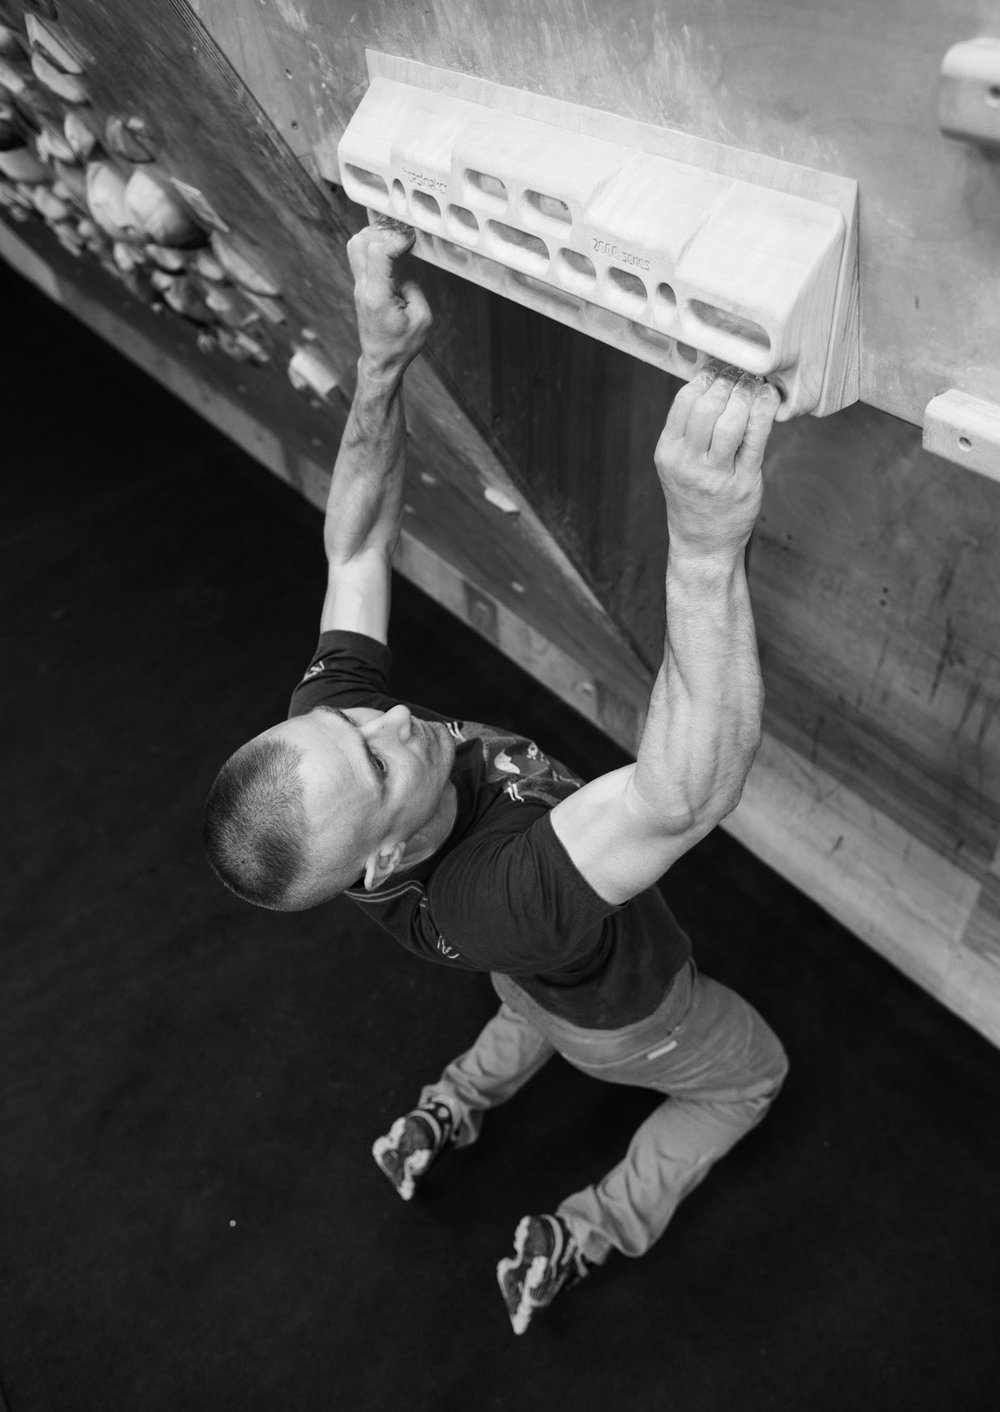 Deadhang repeaters are used as a measure of pure forearm endurance. Photo: Nick Brown